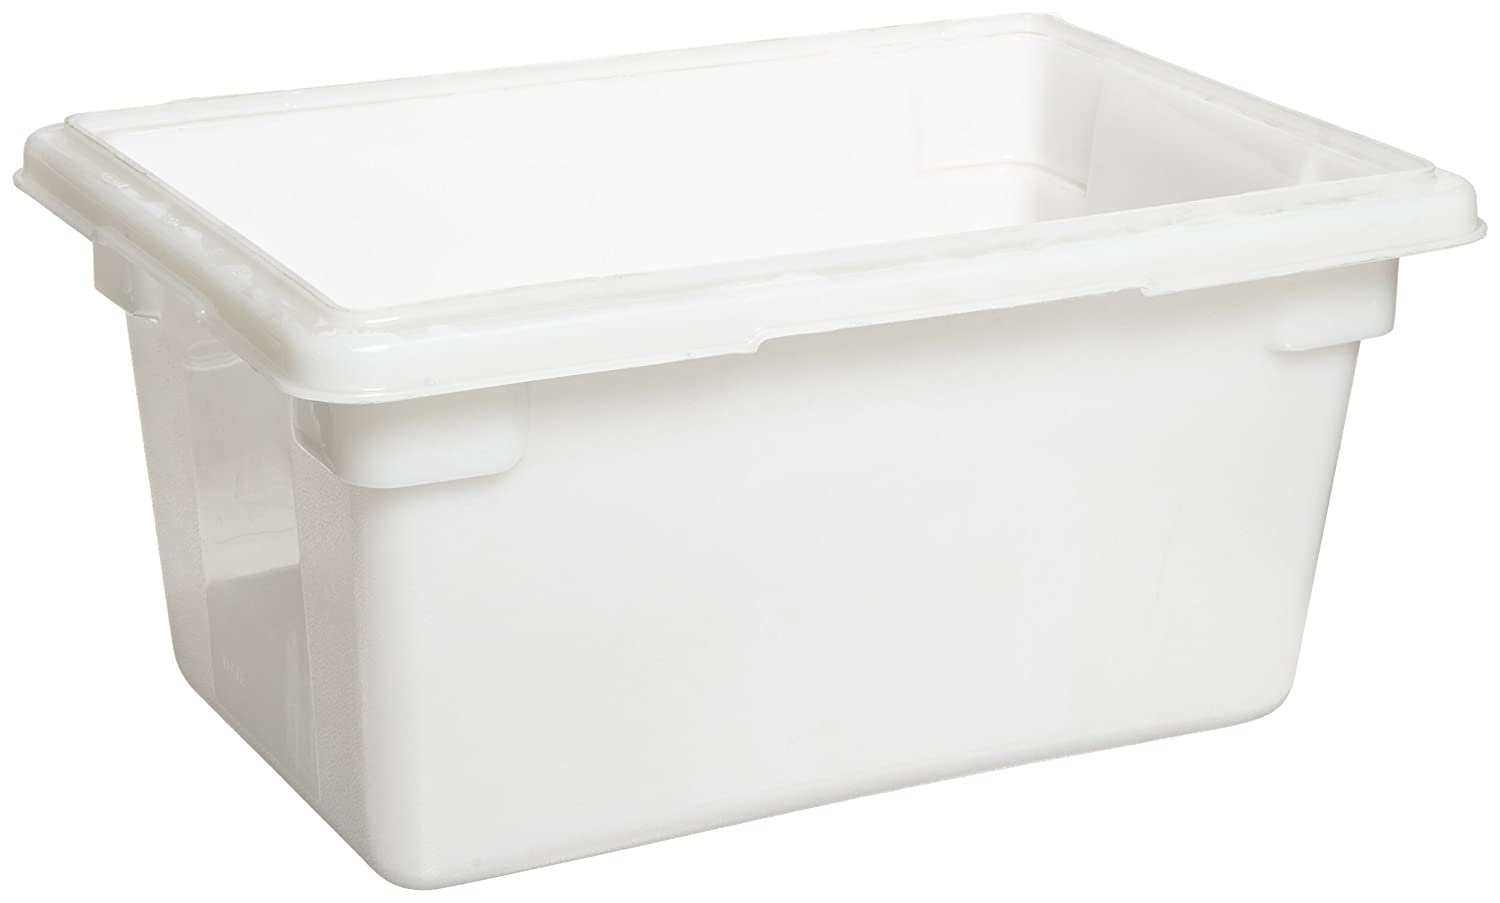 Rubbermaid Commercial Products FG350400WHT 5-Gallon White Food/Tote Box